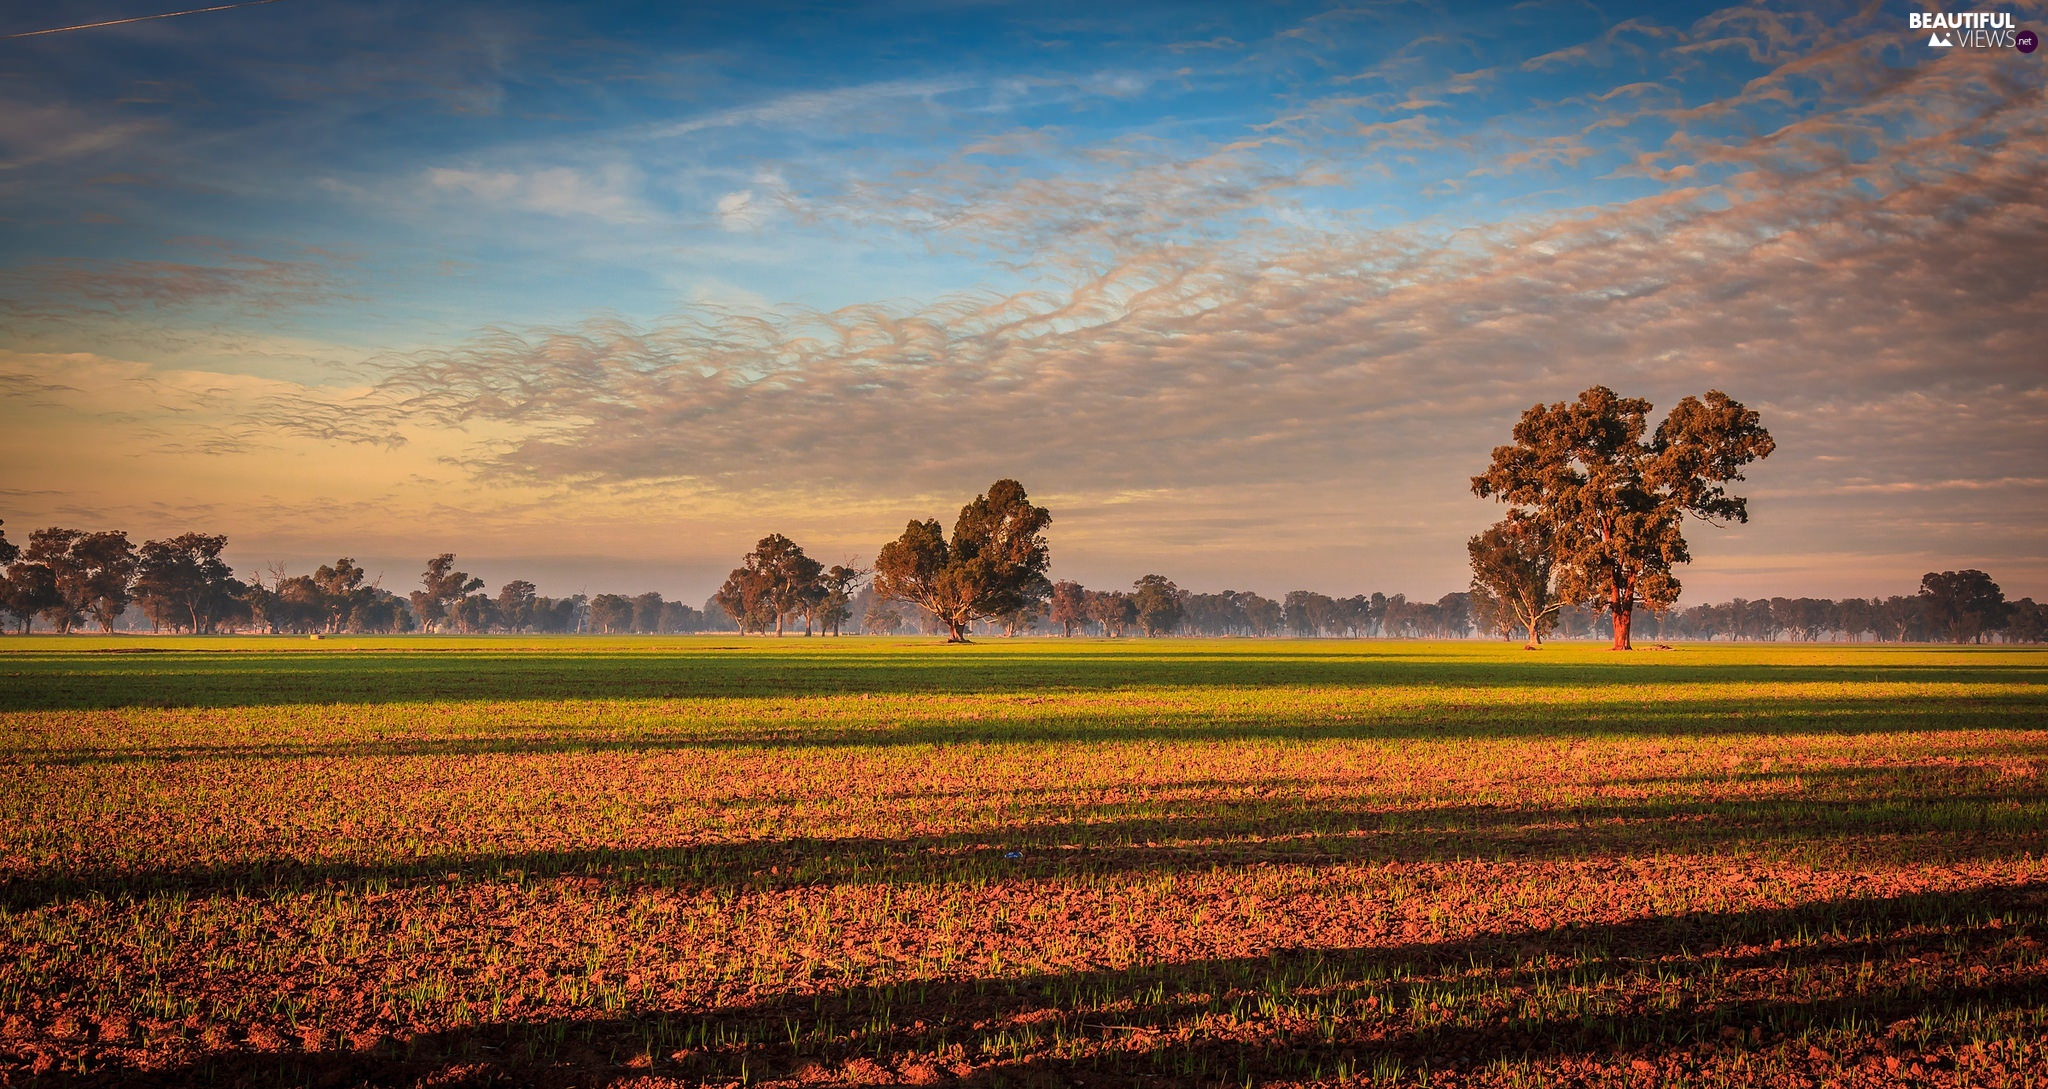 Field, Australia, viewes, Plants, trees, State of Victoria